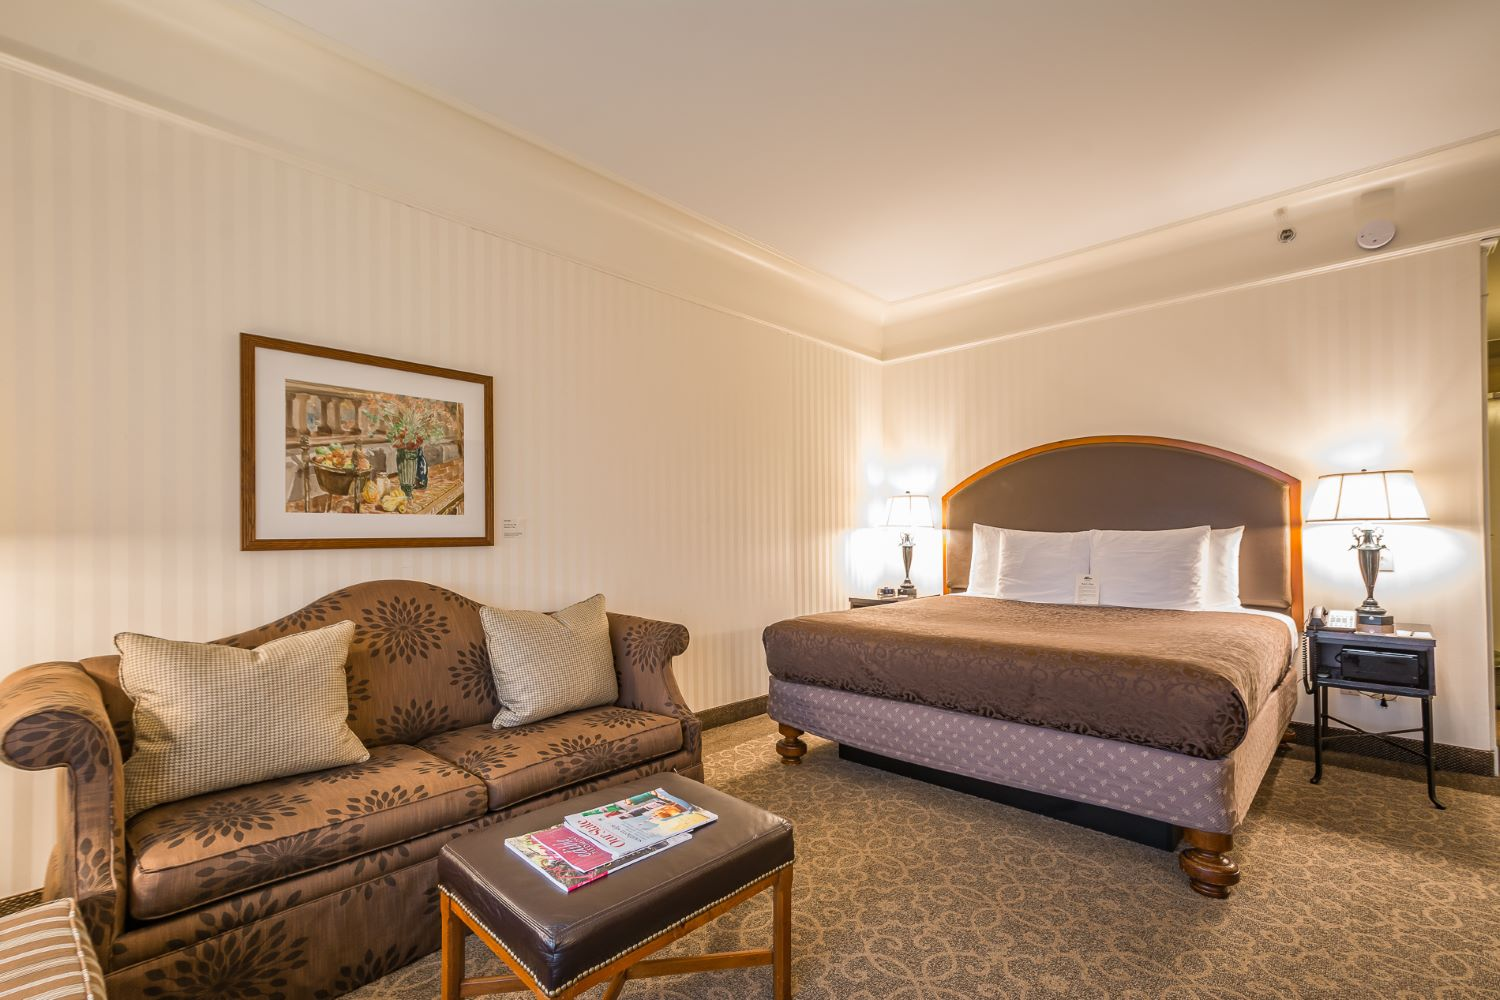 Hotel Henry O Henry Hotel Greensboro Nc Book Direct